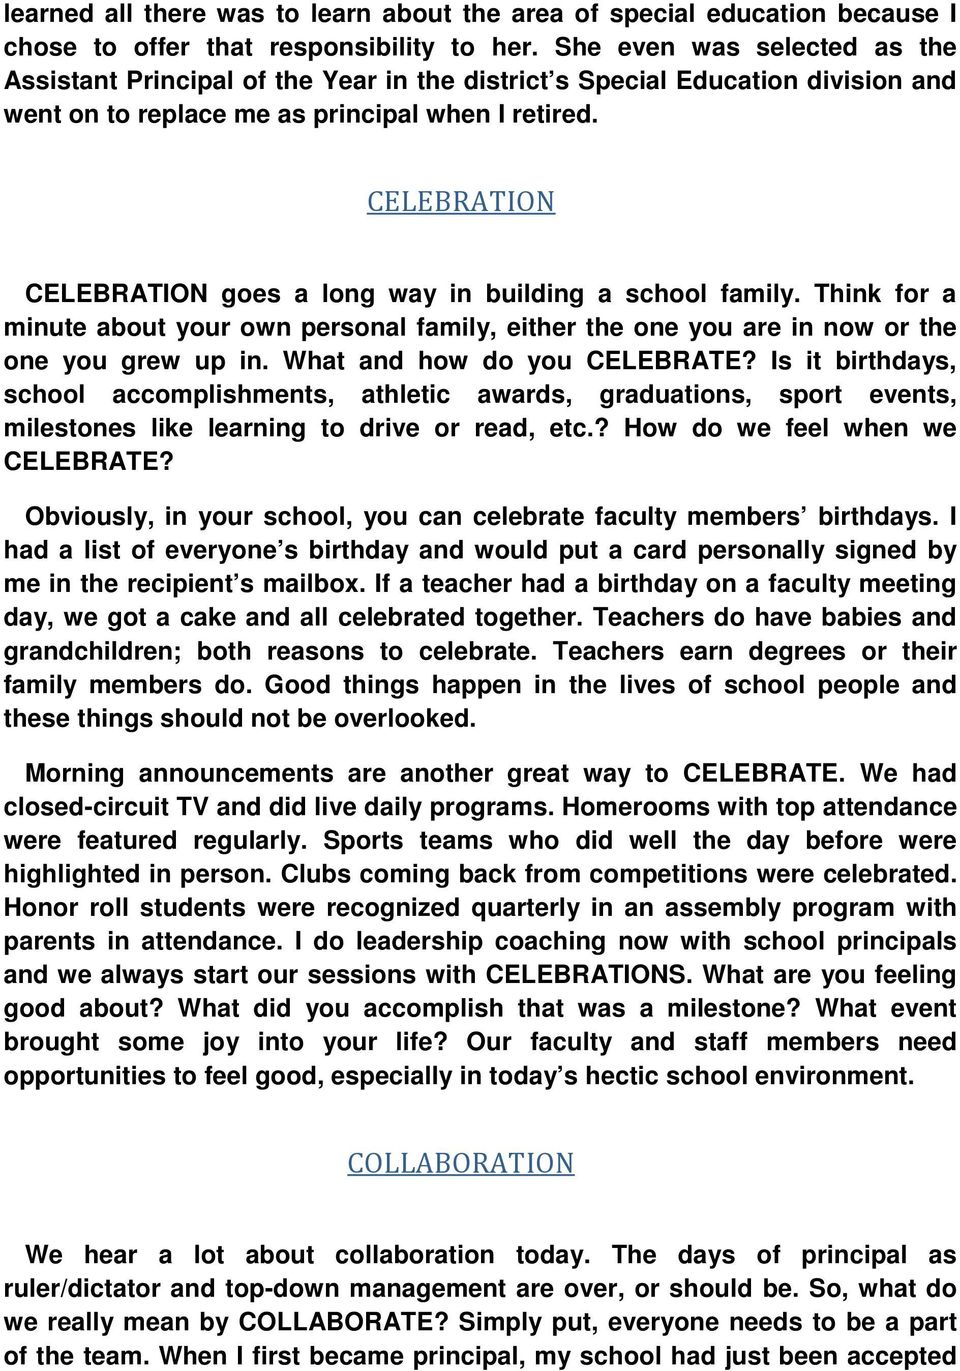 CELEBRATION CELEBRATION goes a long way in building a school family. Think for a minute about your own personal family, either the one you are in now or the one you grew up in.